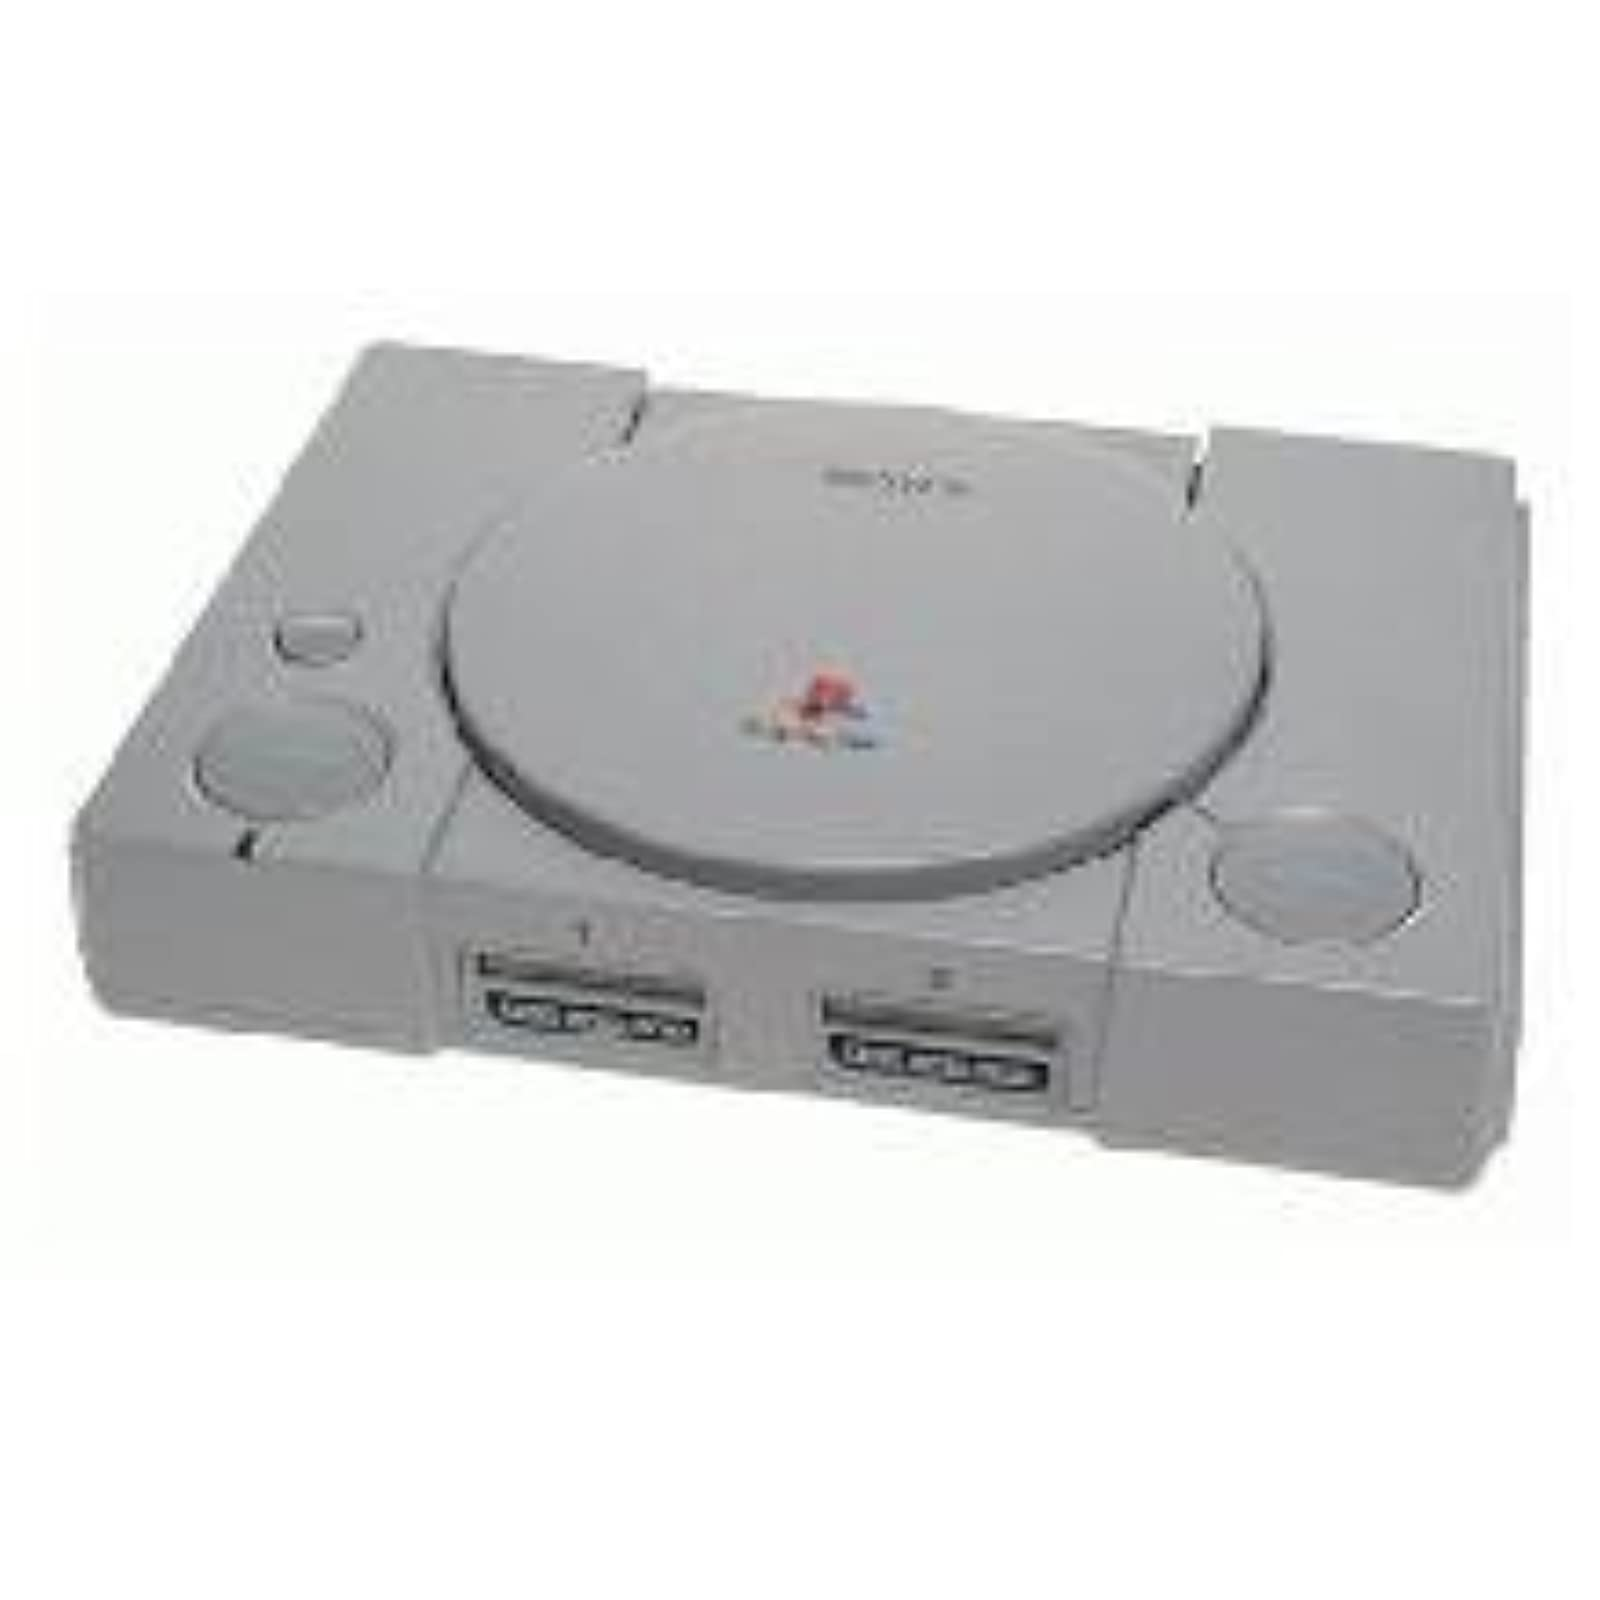 Sony PlayStation System With Dual Shock Controller